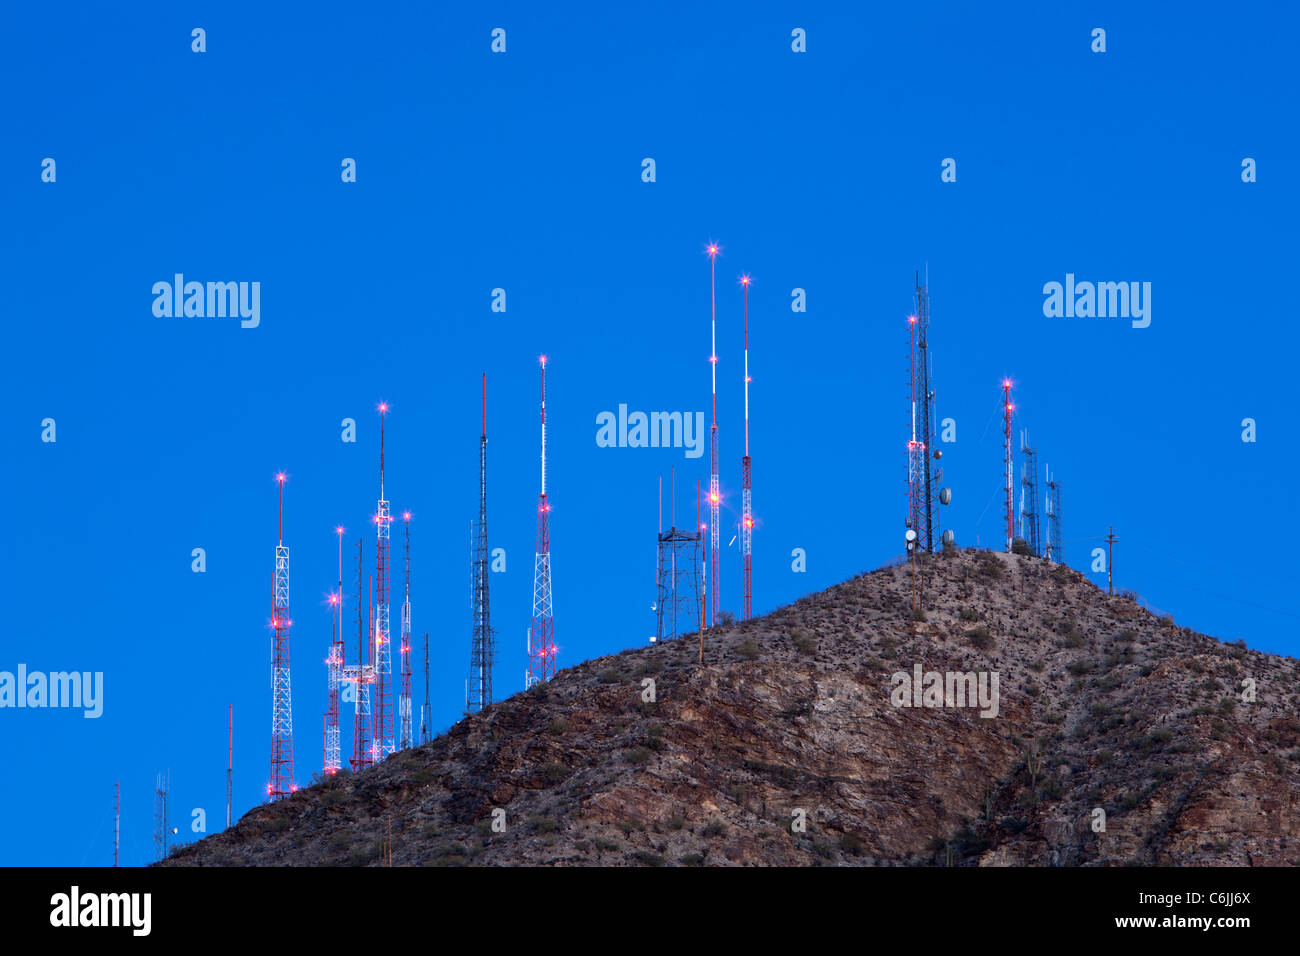 Transmission masts at dusk in Phoenix South Mountain Park, Phoenix, USA - Stock Image